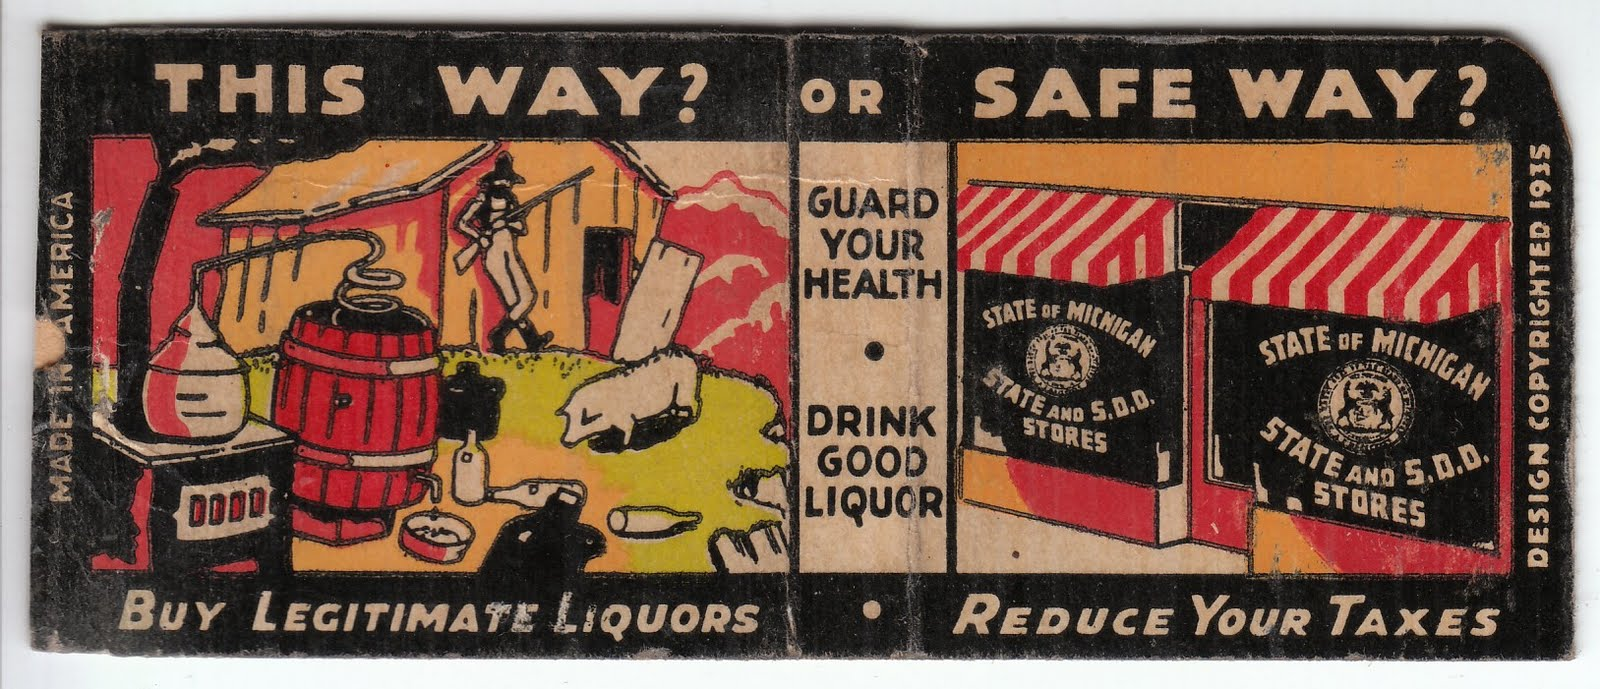 Buy legitimate liquor, not moonshine